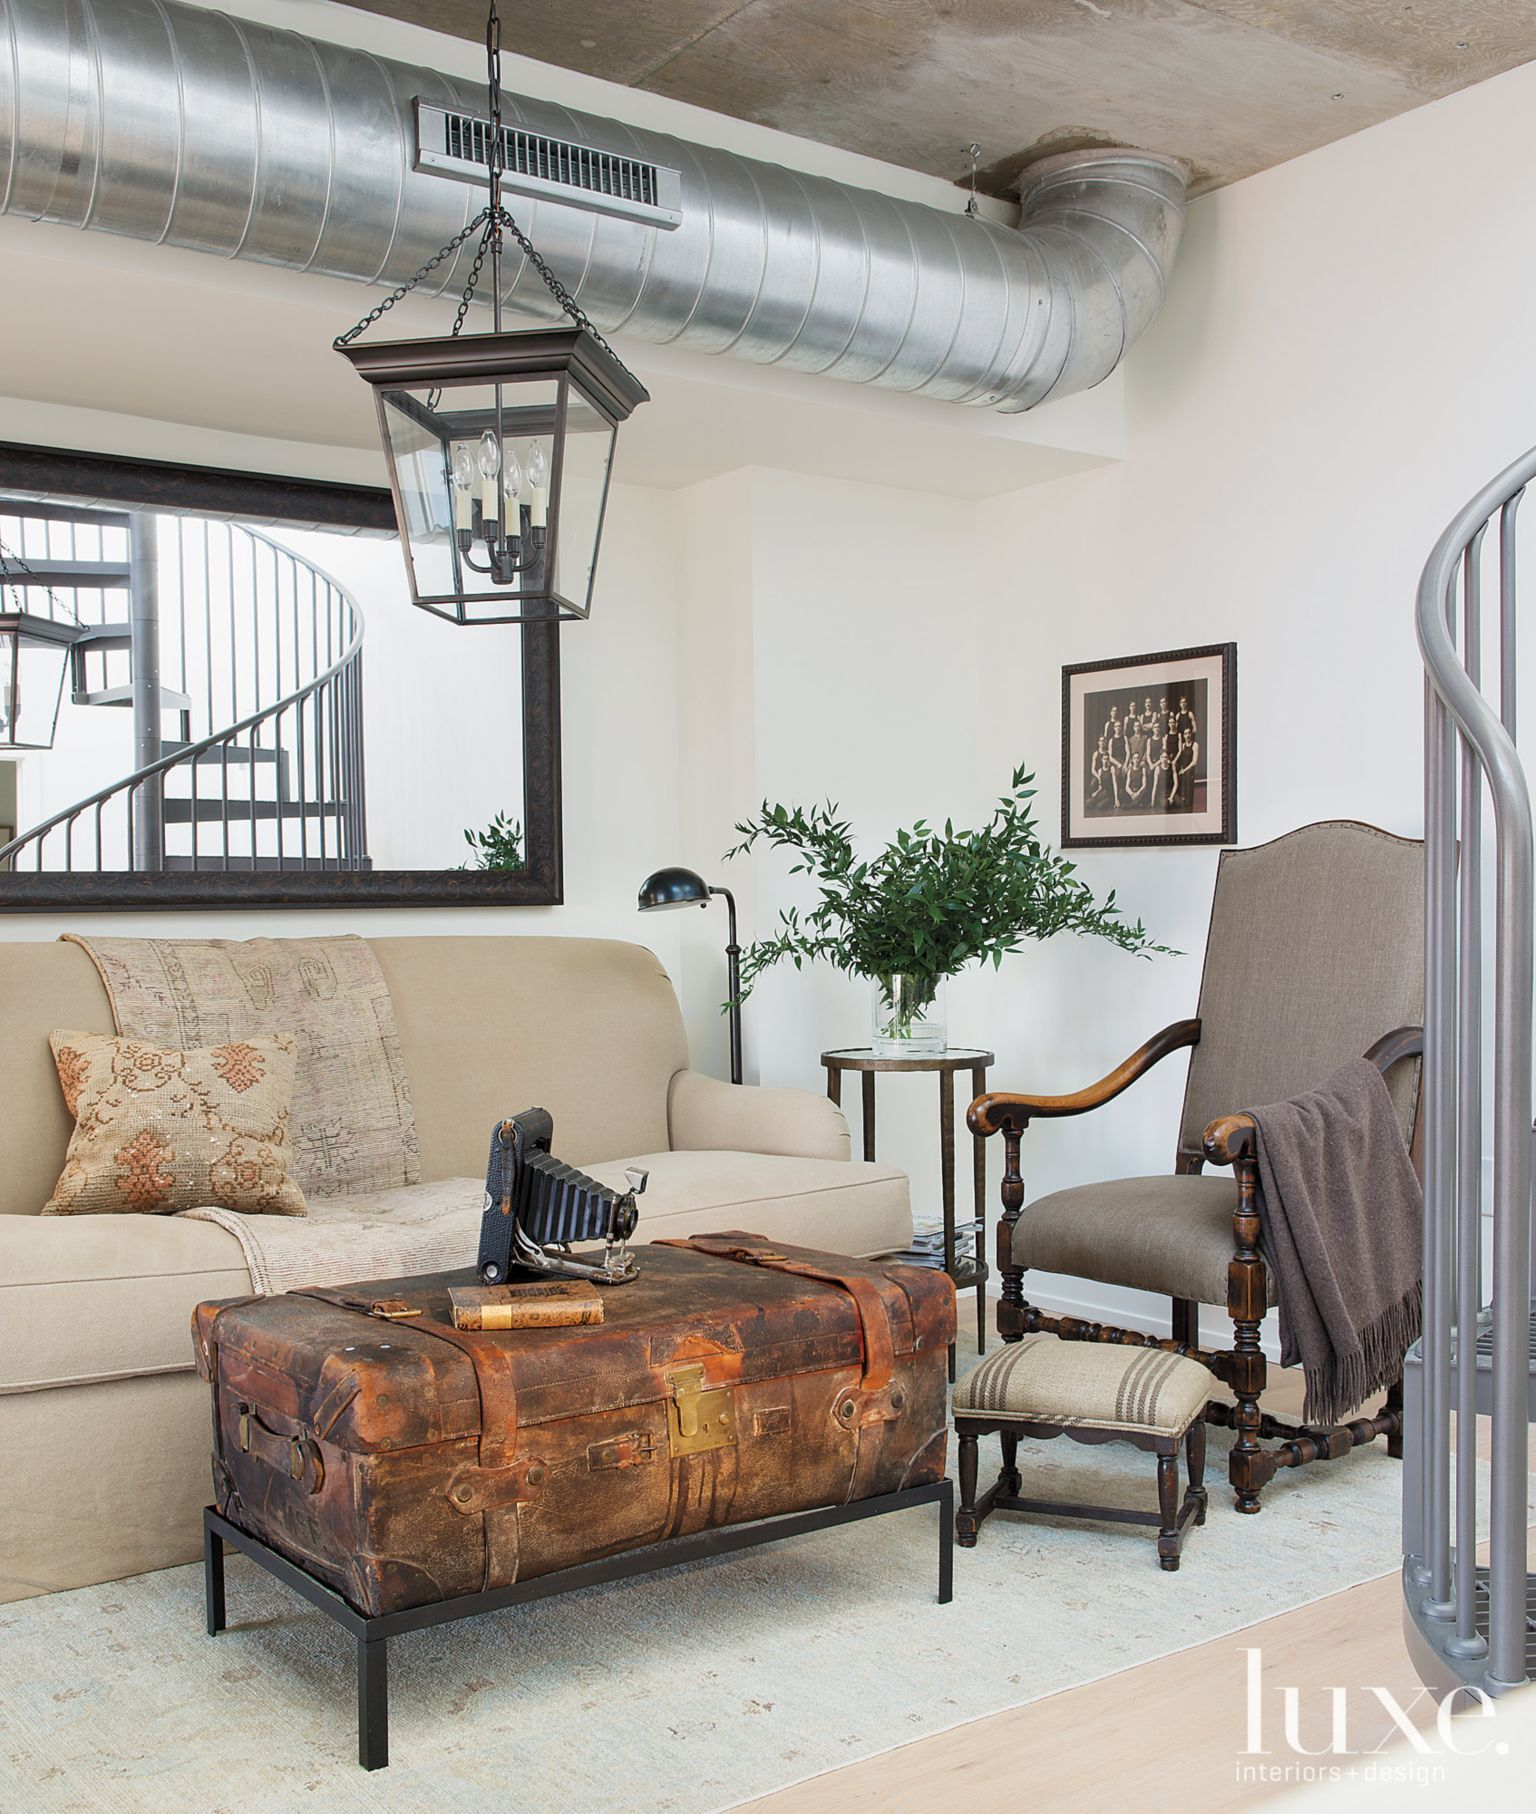 Modern Interior Design Magazine: Neutral Eclectic Living Room With Industrial Ceiling